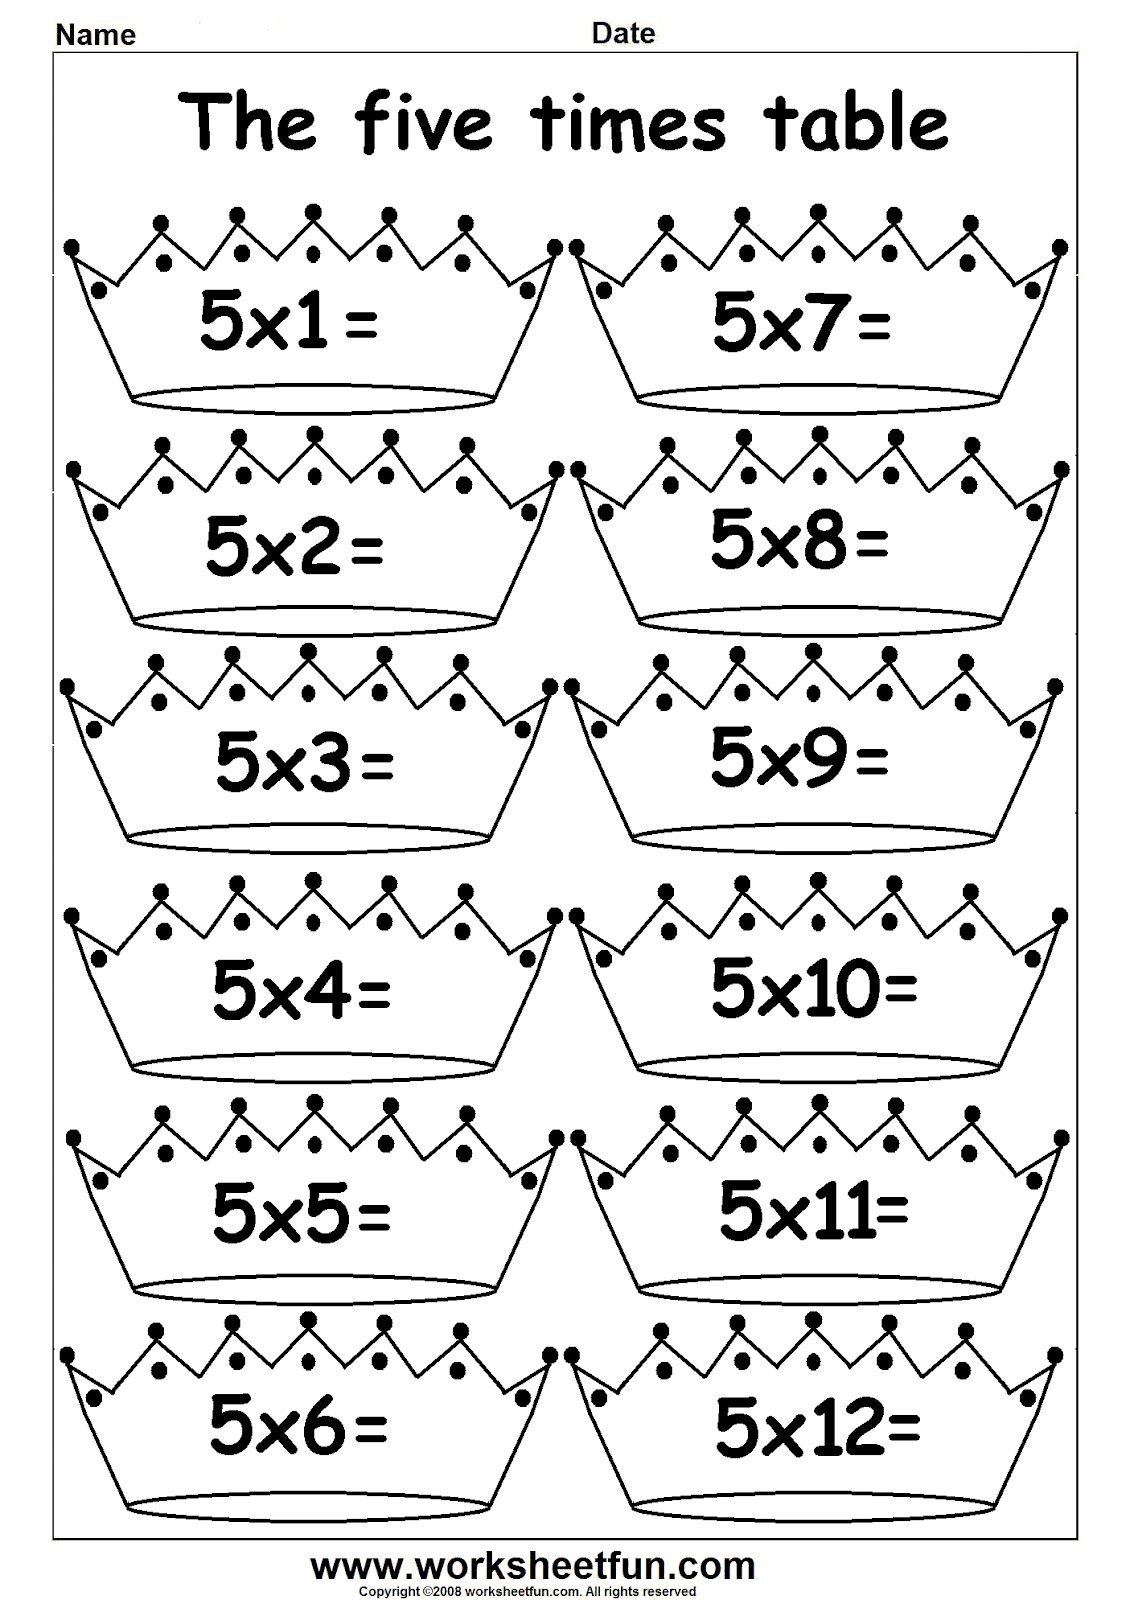 arab unity school grade 1 d blog multiplication worksheet. Black Bedroom Furniture Sets. Home Design Ideas